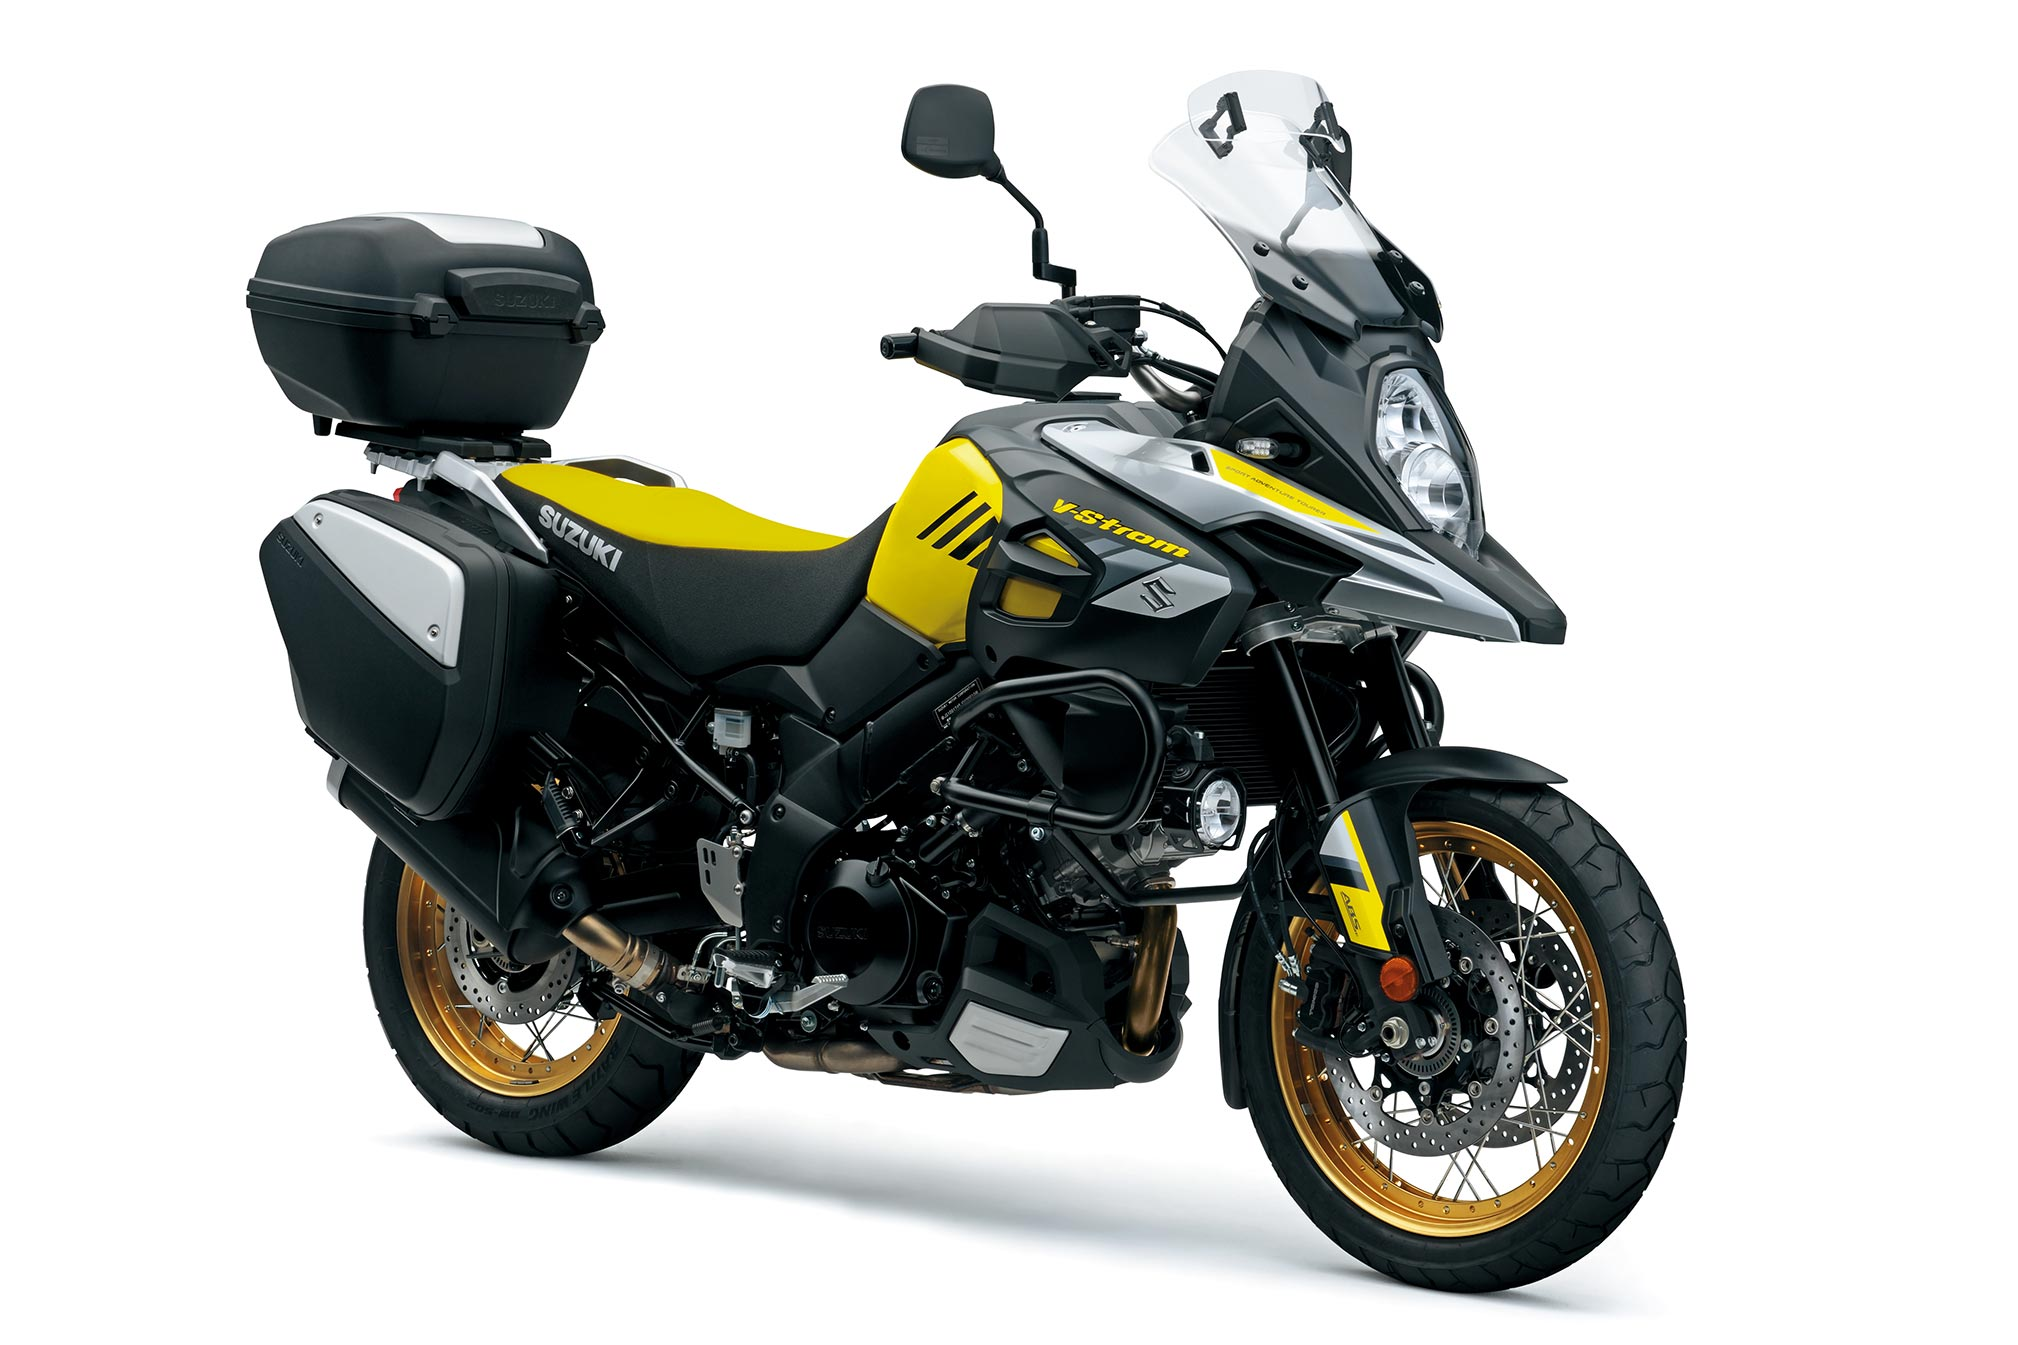 2018 suzuki v strom 1000xt review. Black Bedroom Furniture Sets. Home Design Ideas